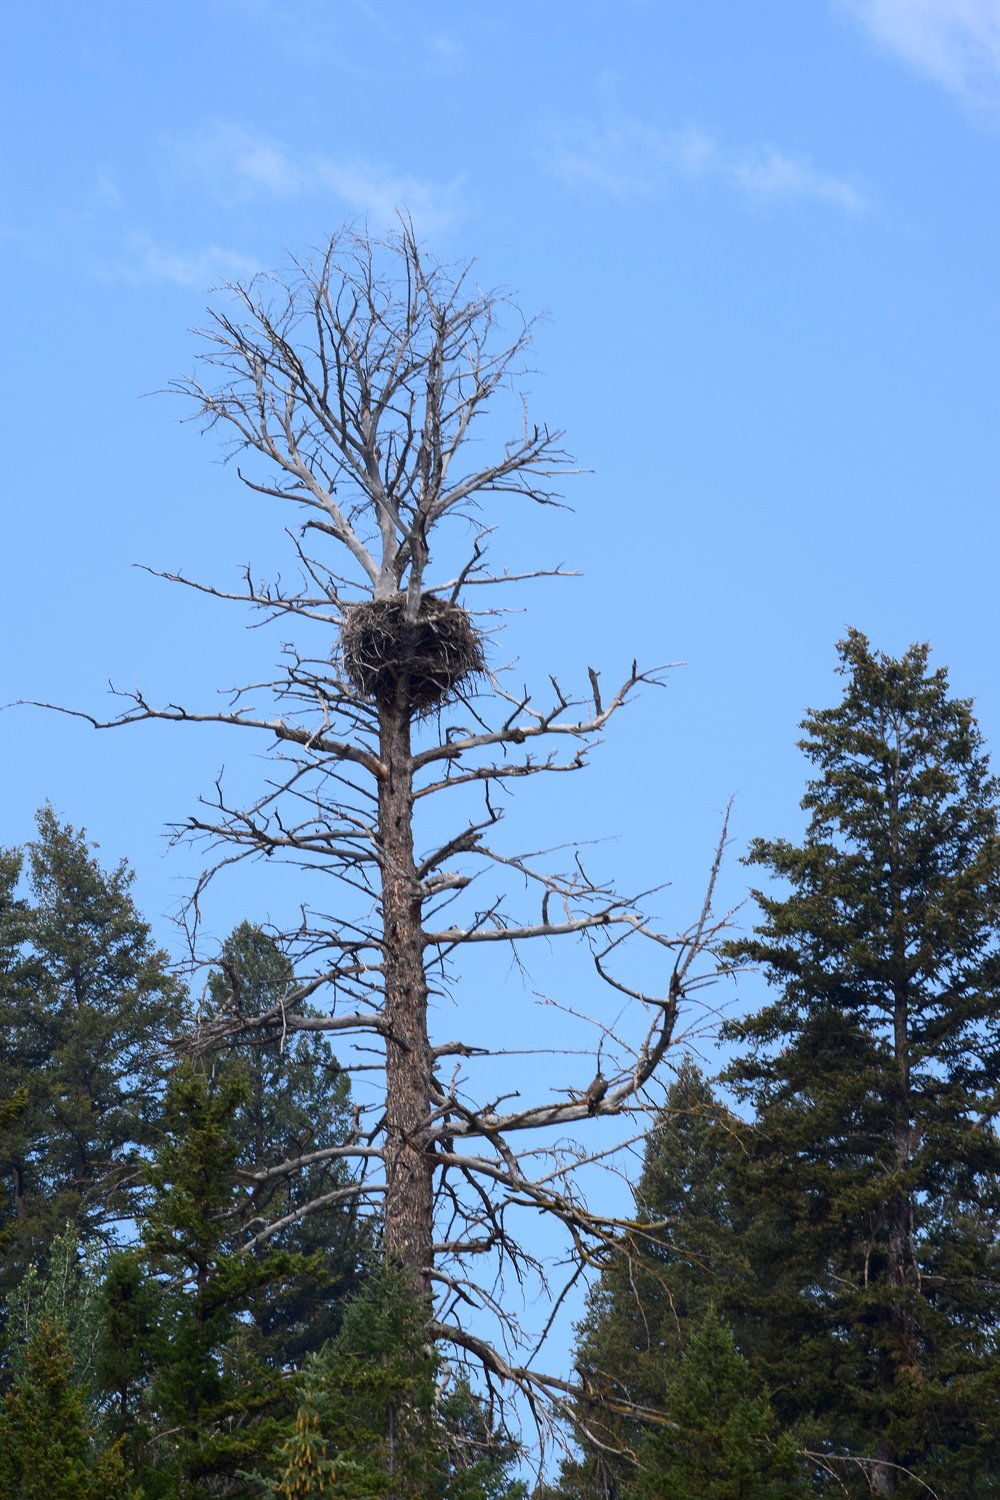 An eagle's nest! Can you spot the adolescent lower down in the tree?